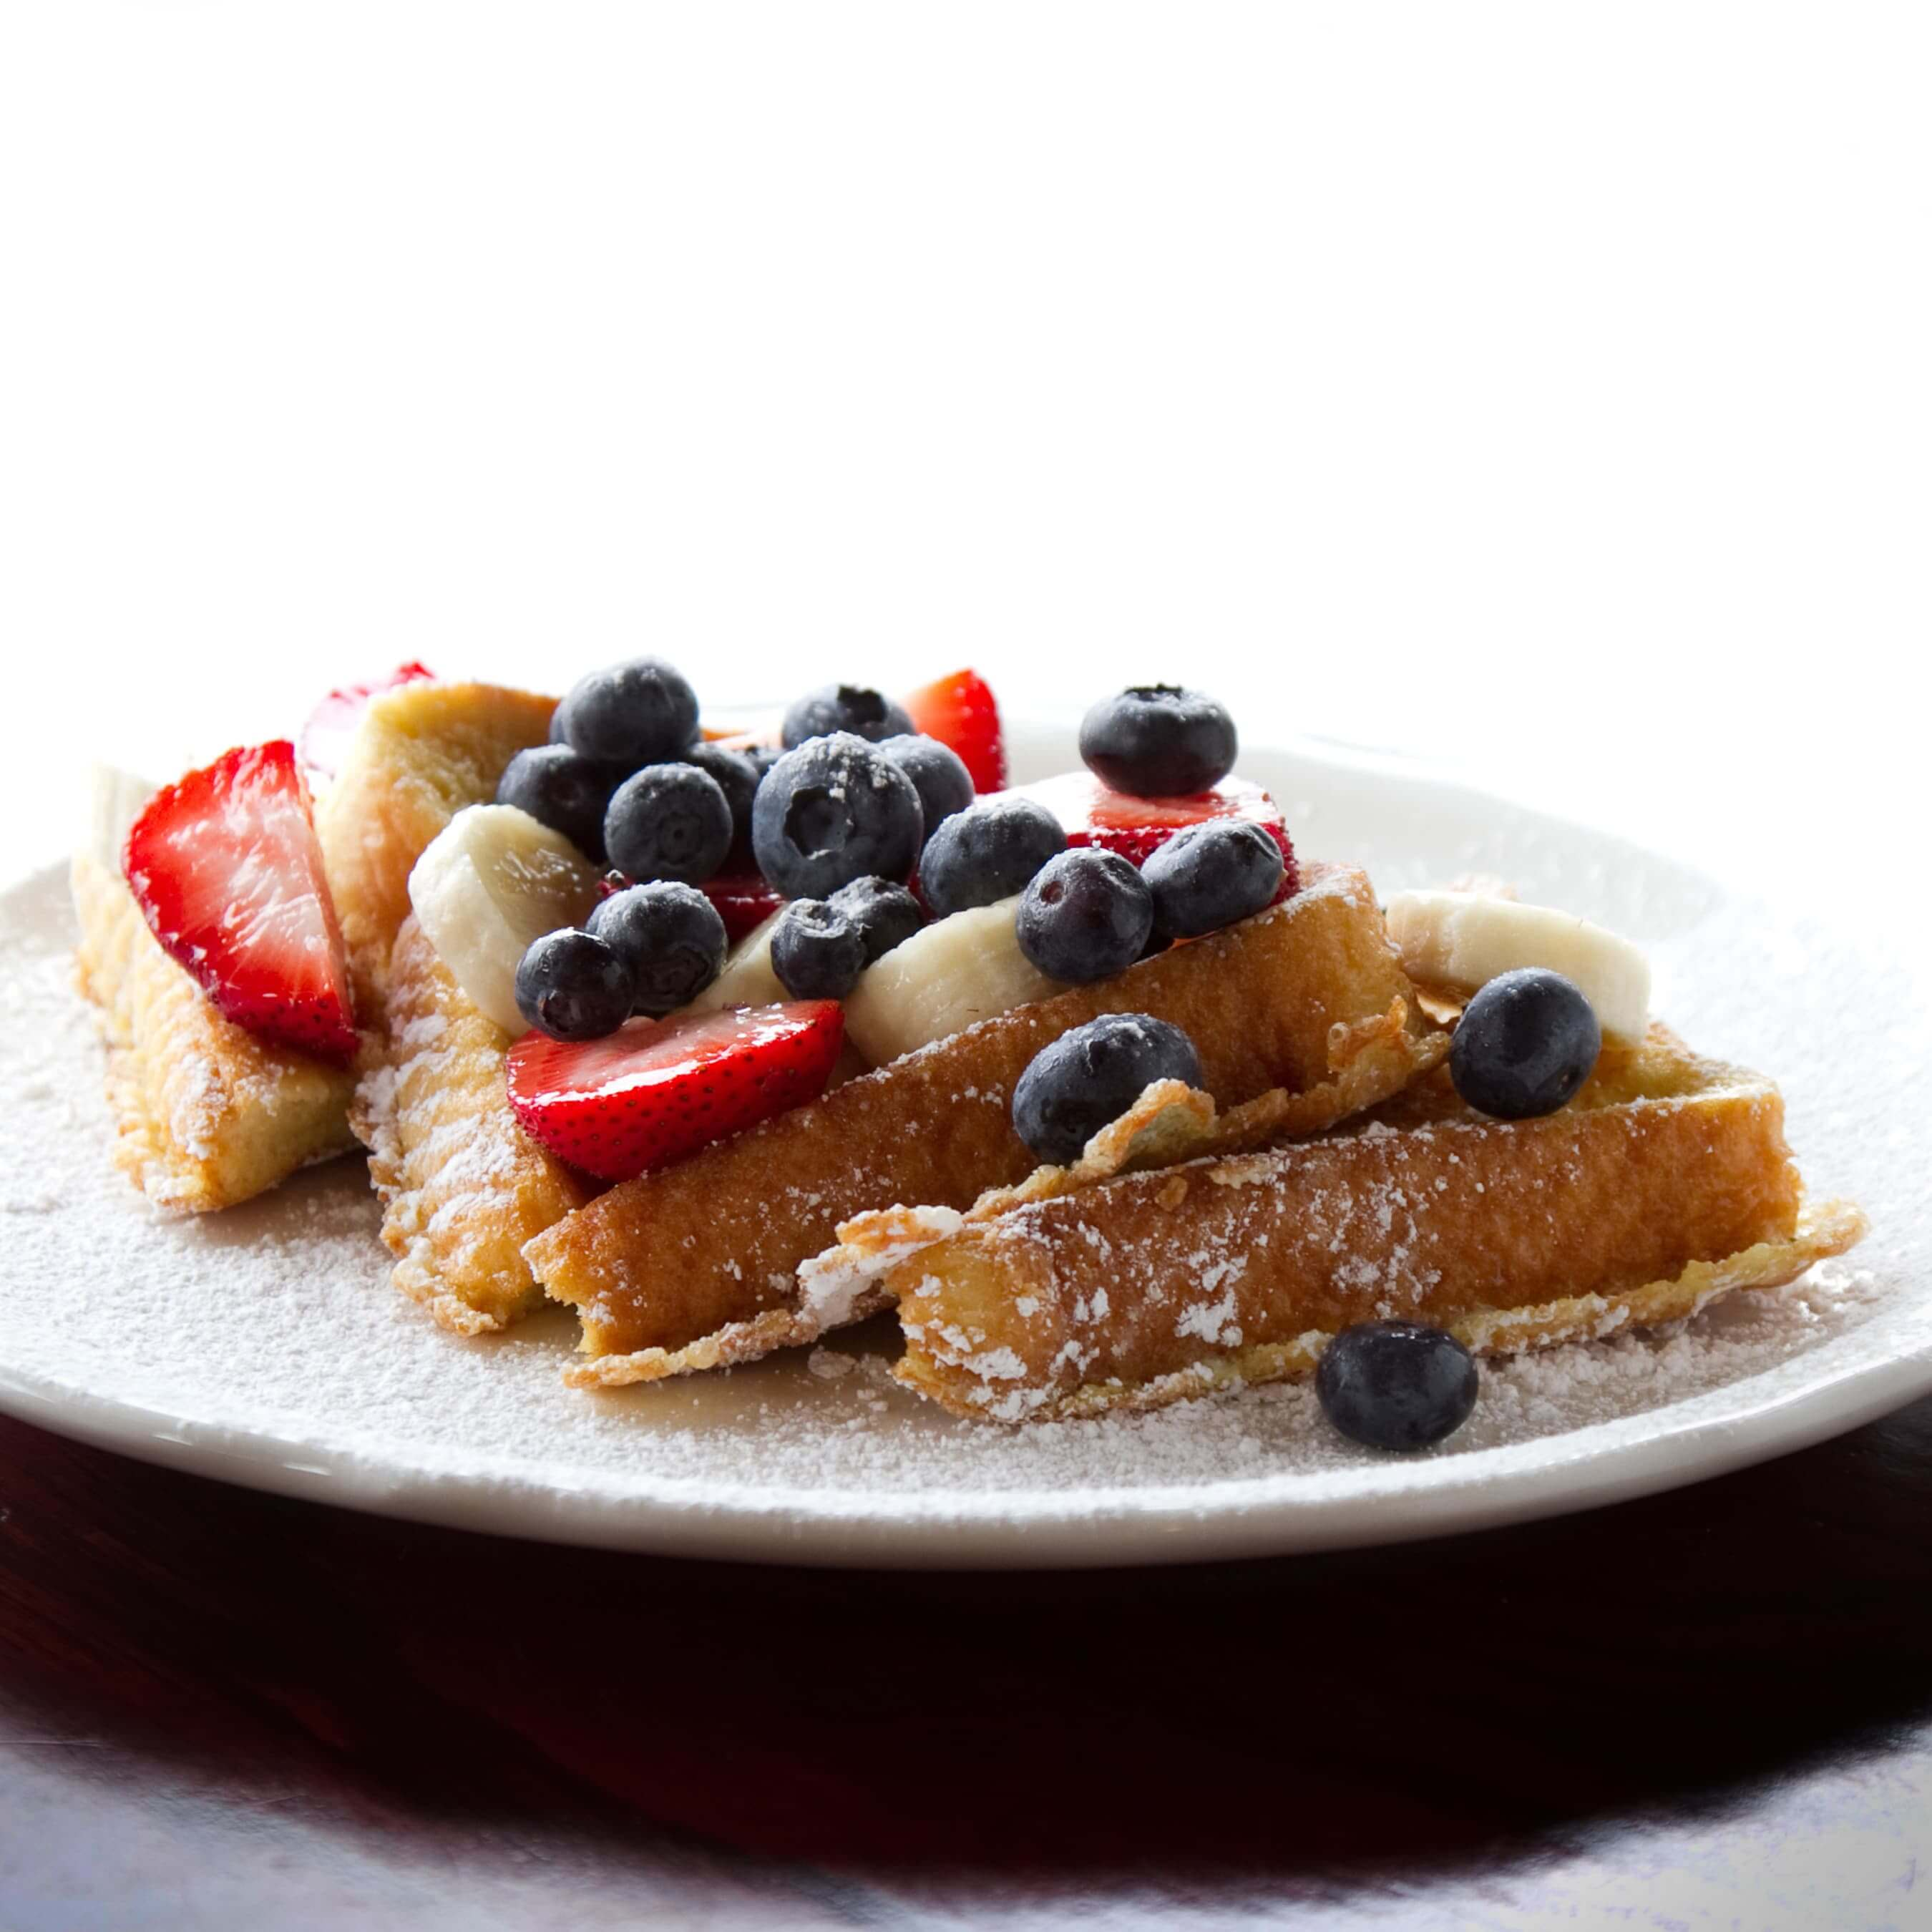 Serving Award Winning Breakfast Lunch Cuisine Including The World Famous Baked Le Pancake And Fresh Dutch Babies Enjoy Them With Richard Walker S Kona